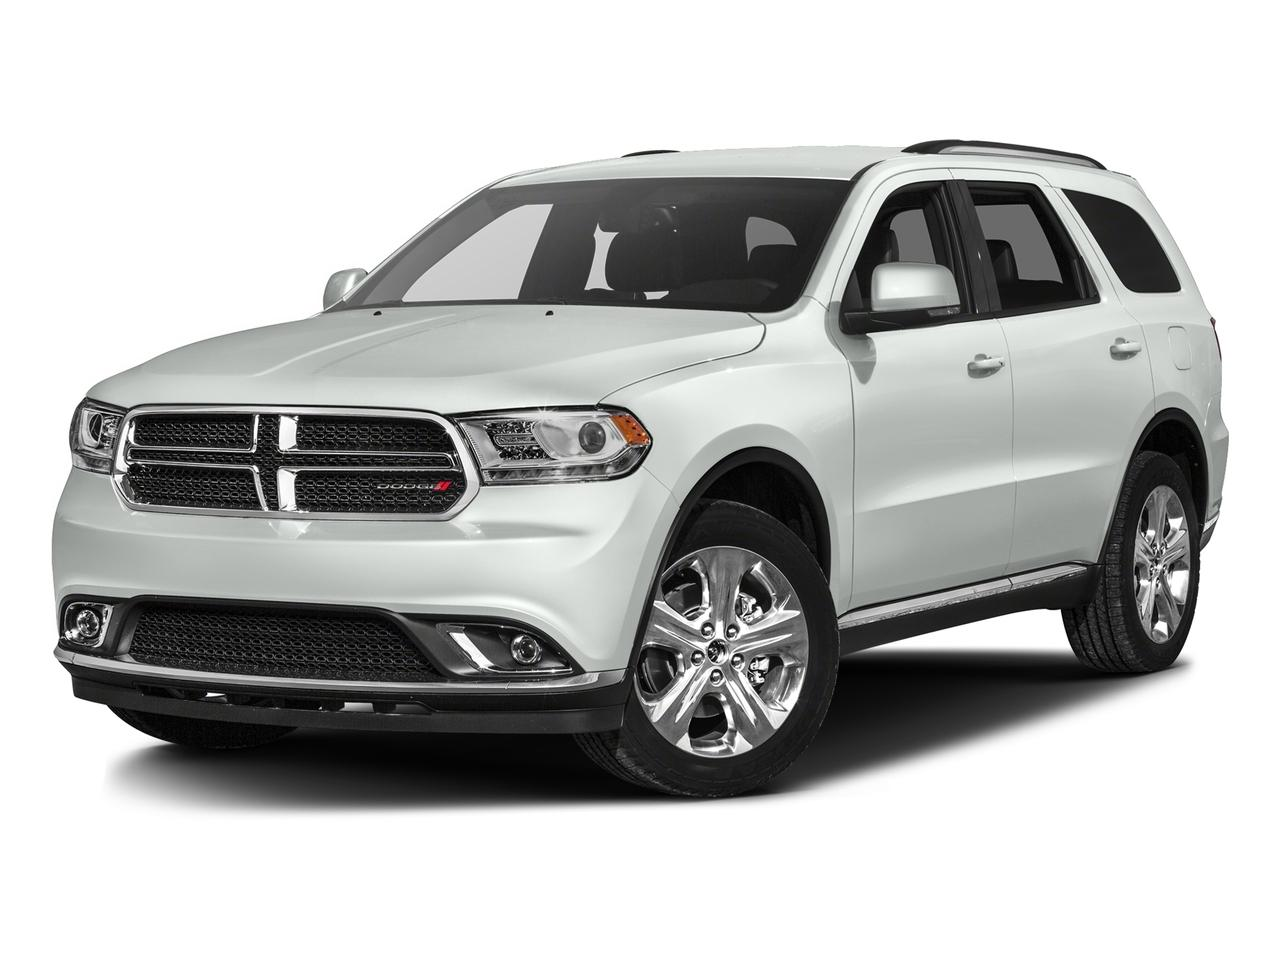 2016 Dodge Durango Vehicle Photo in Medina, OH 44256